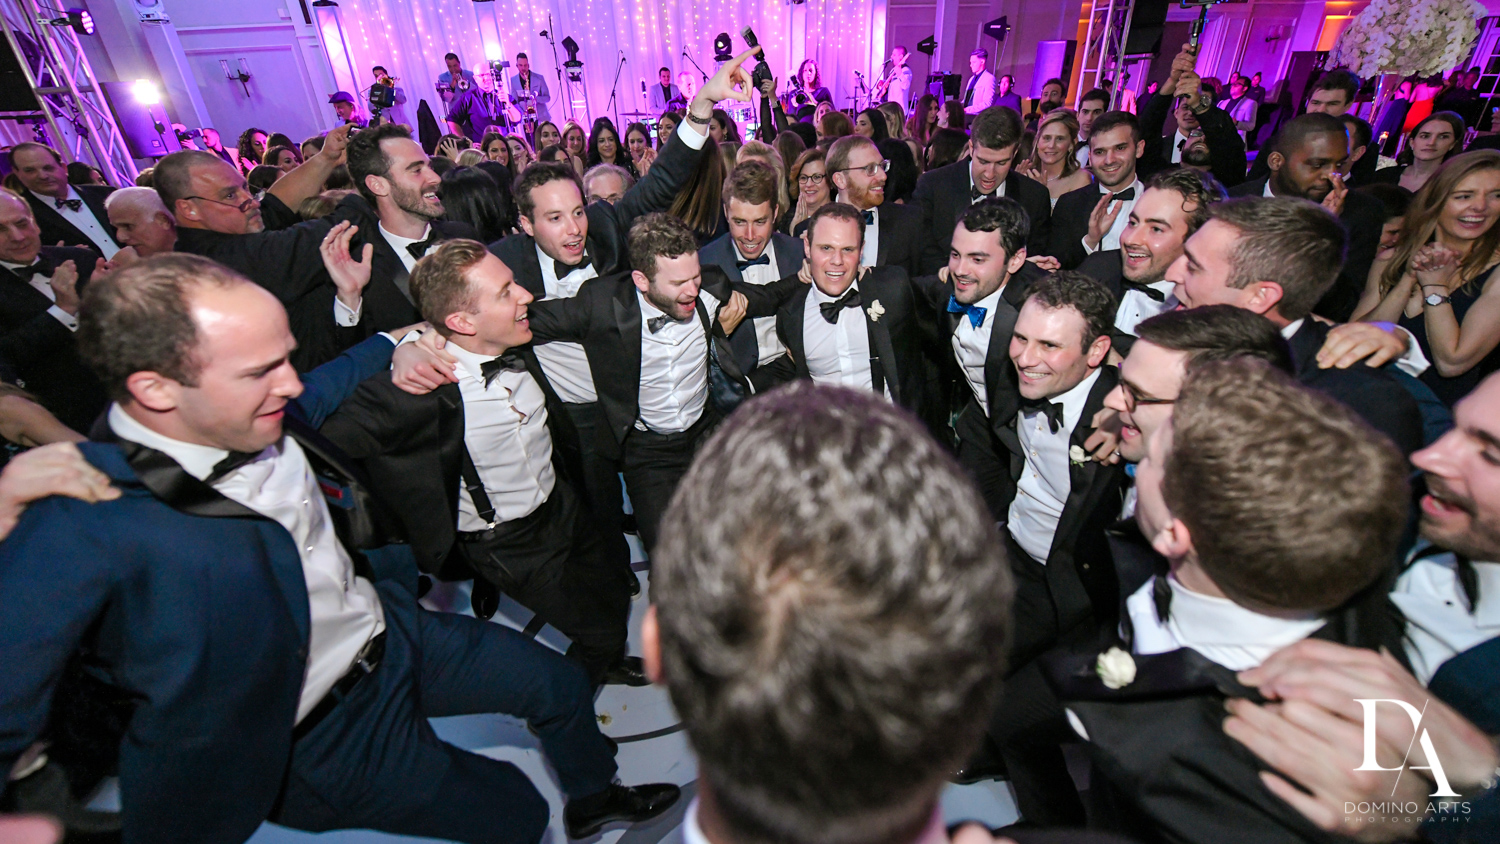 jewish hora at A Ritz Carlton Wedding in Key Biscayne by Domino Arts Photography